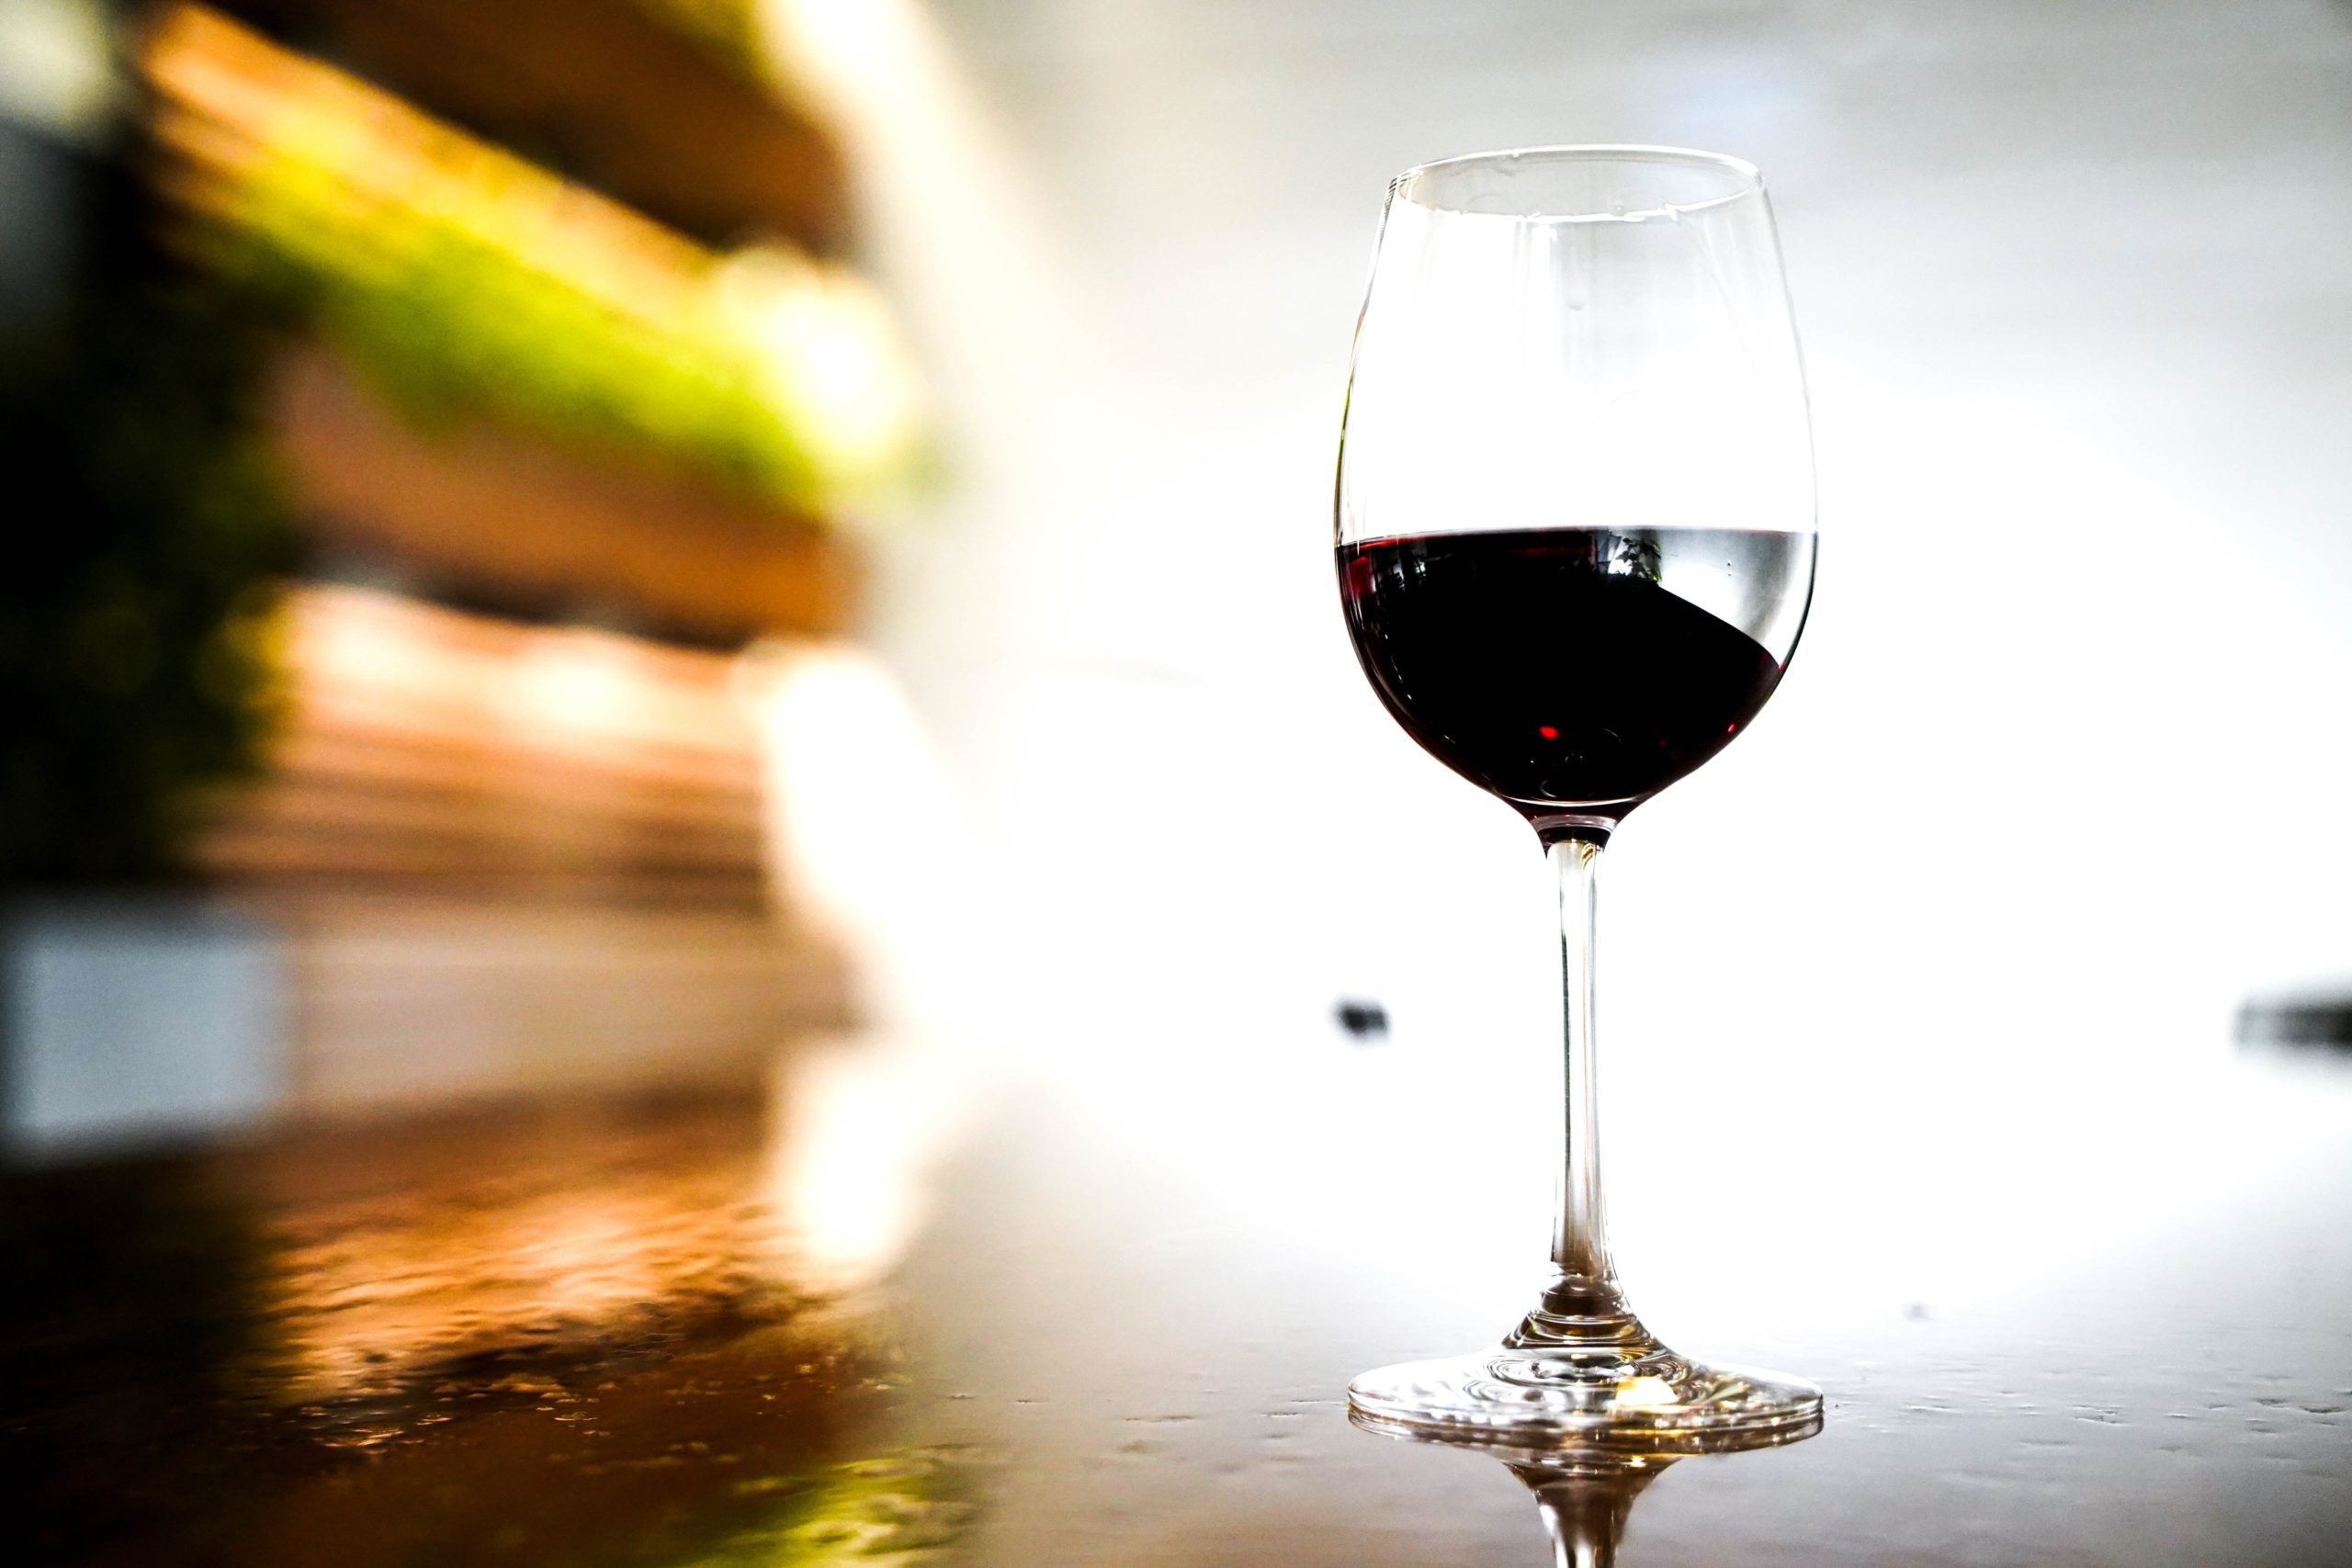 Moderate Drinking - Should You Be Cutting Back on Your Alcohol Intake?